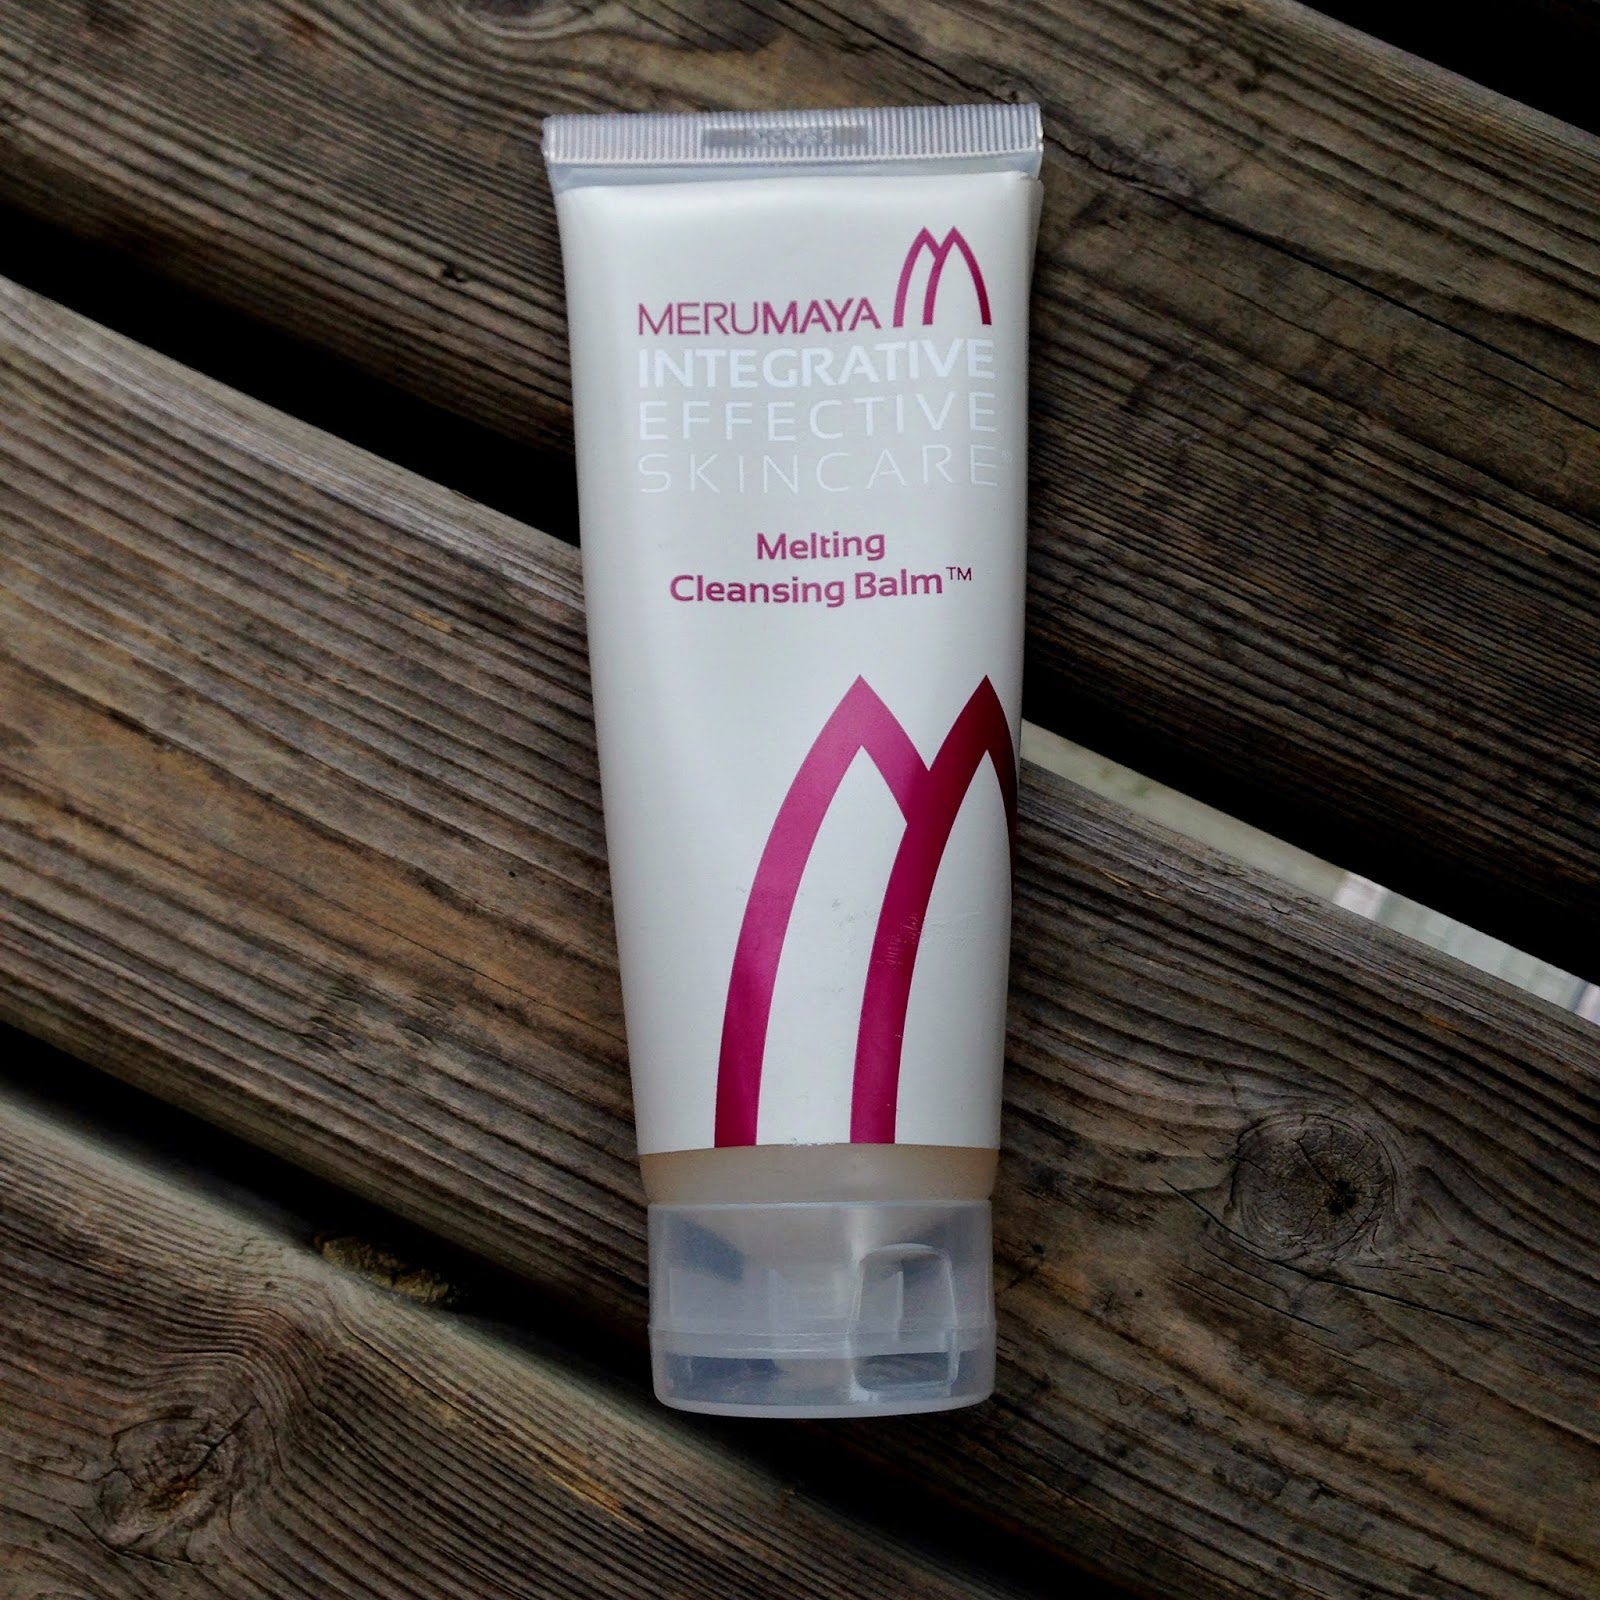 Merumaya Cleansing Balm Review